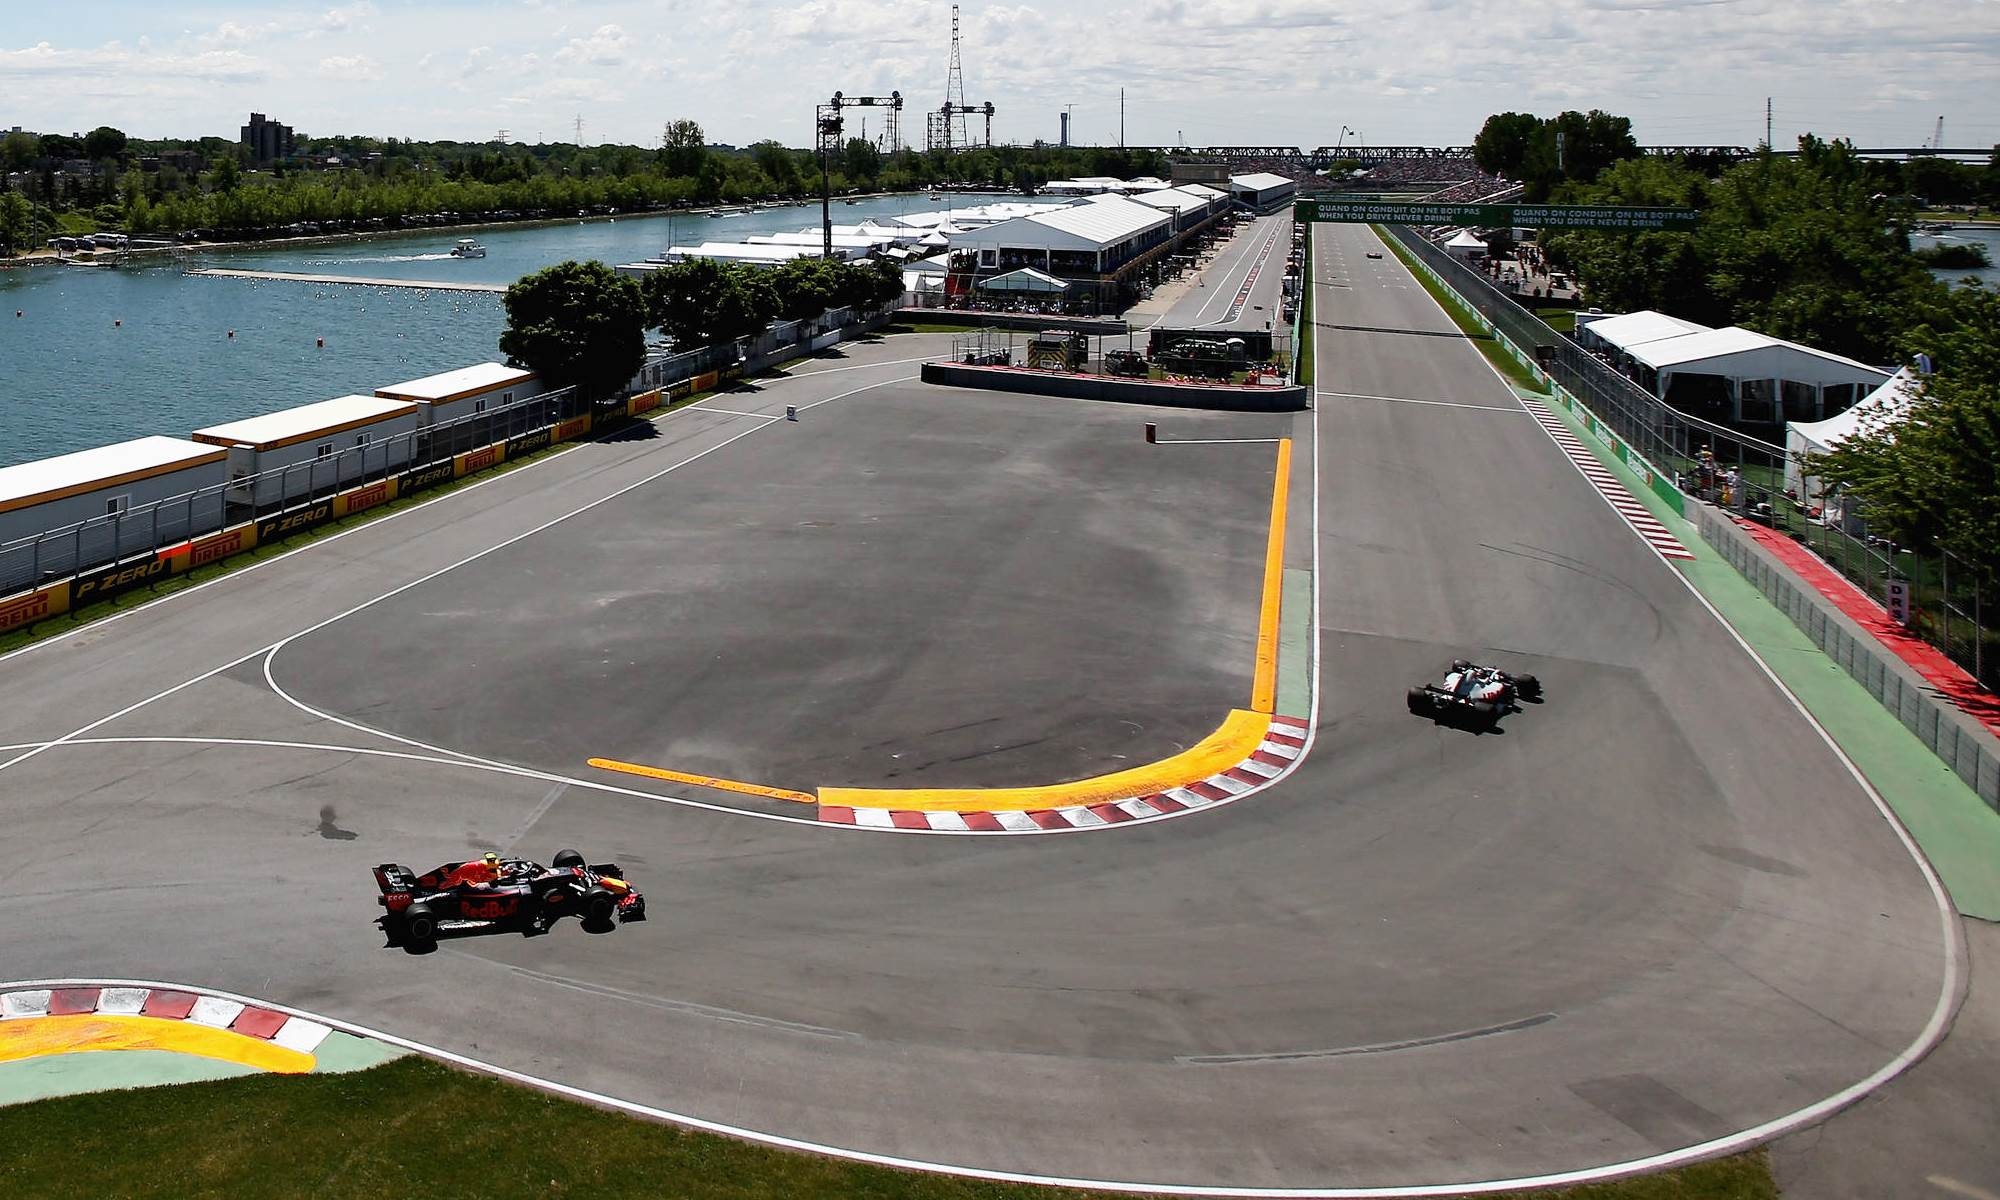 F1 preview Canada 2019 Wall of Champions